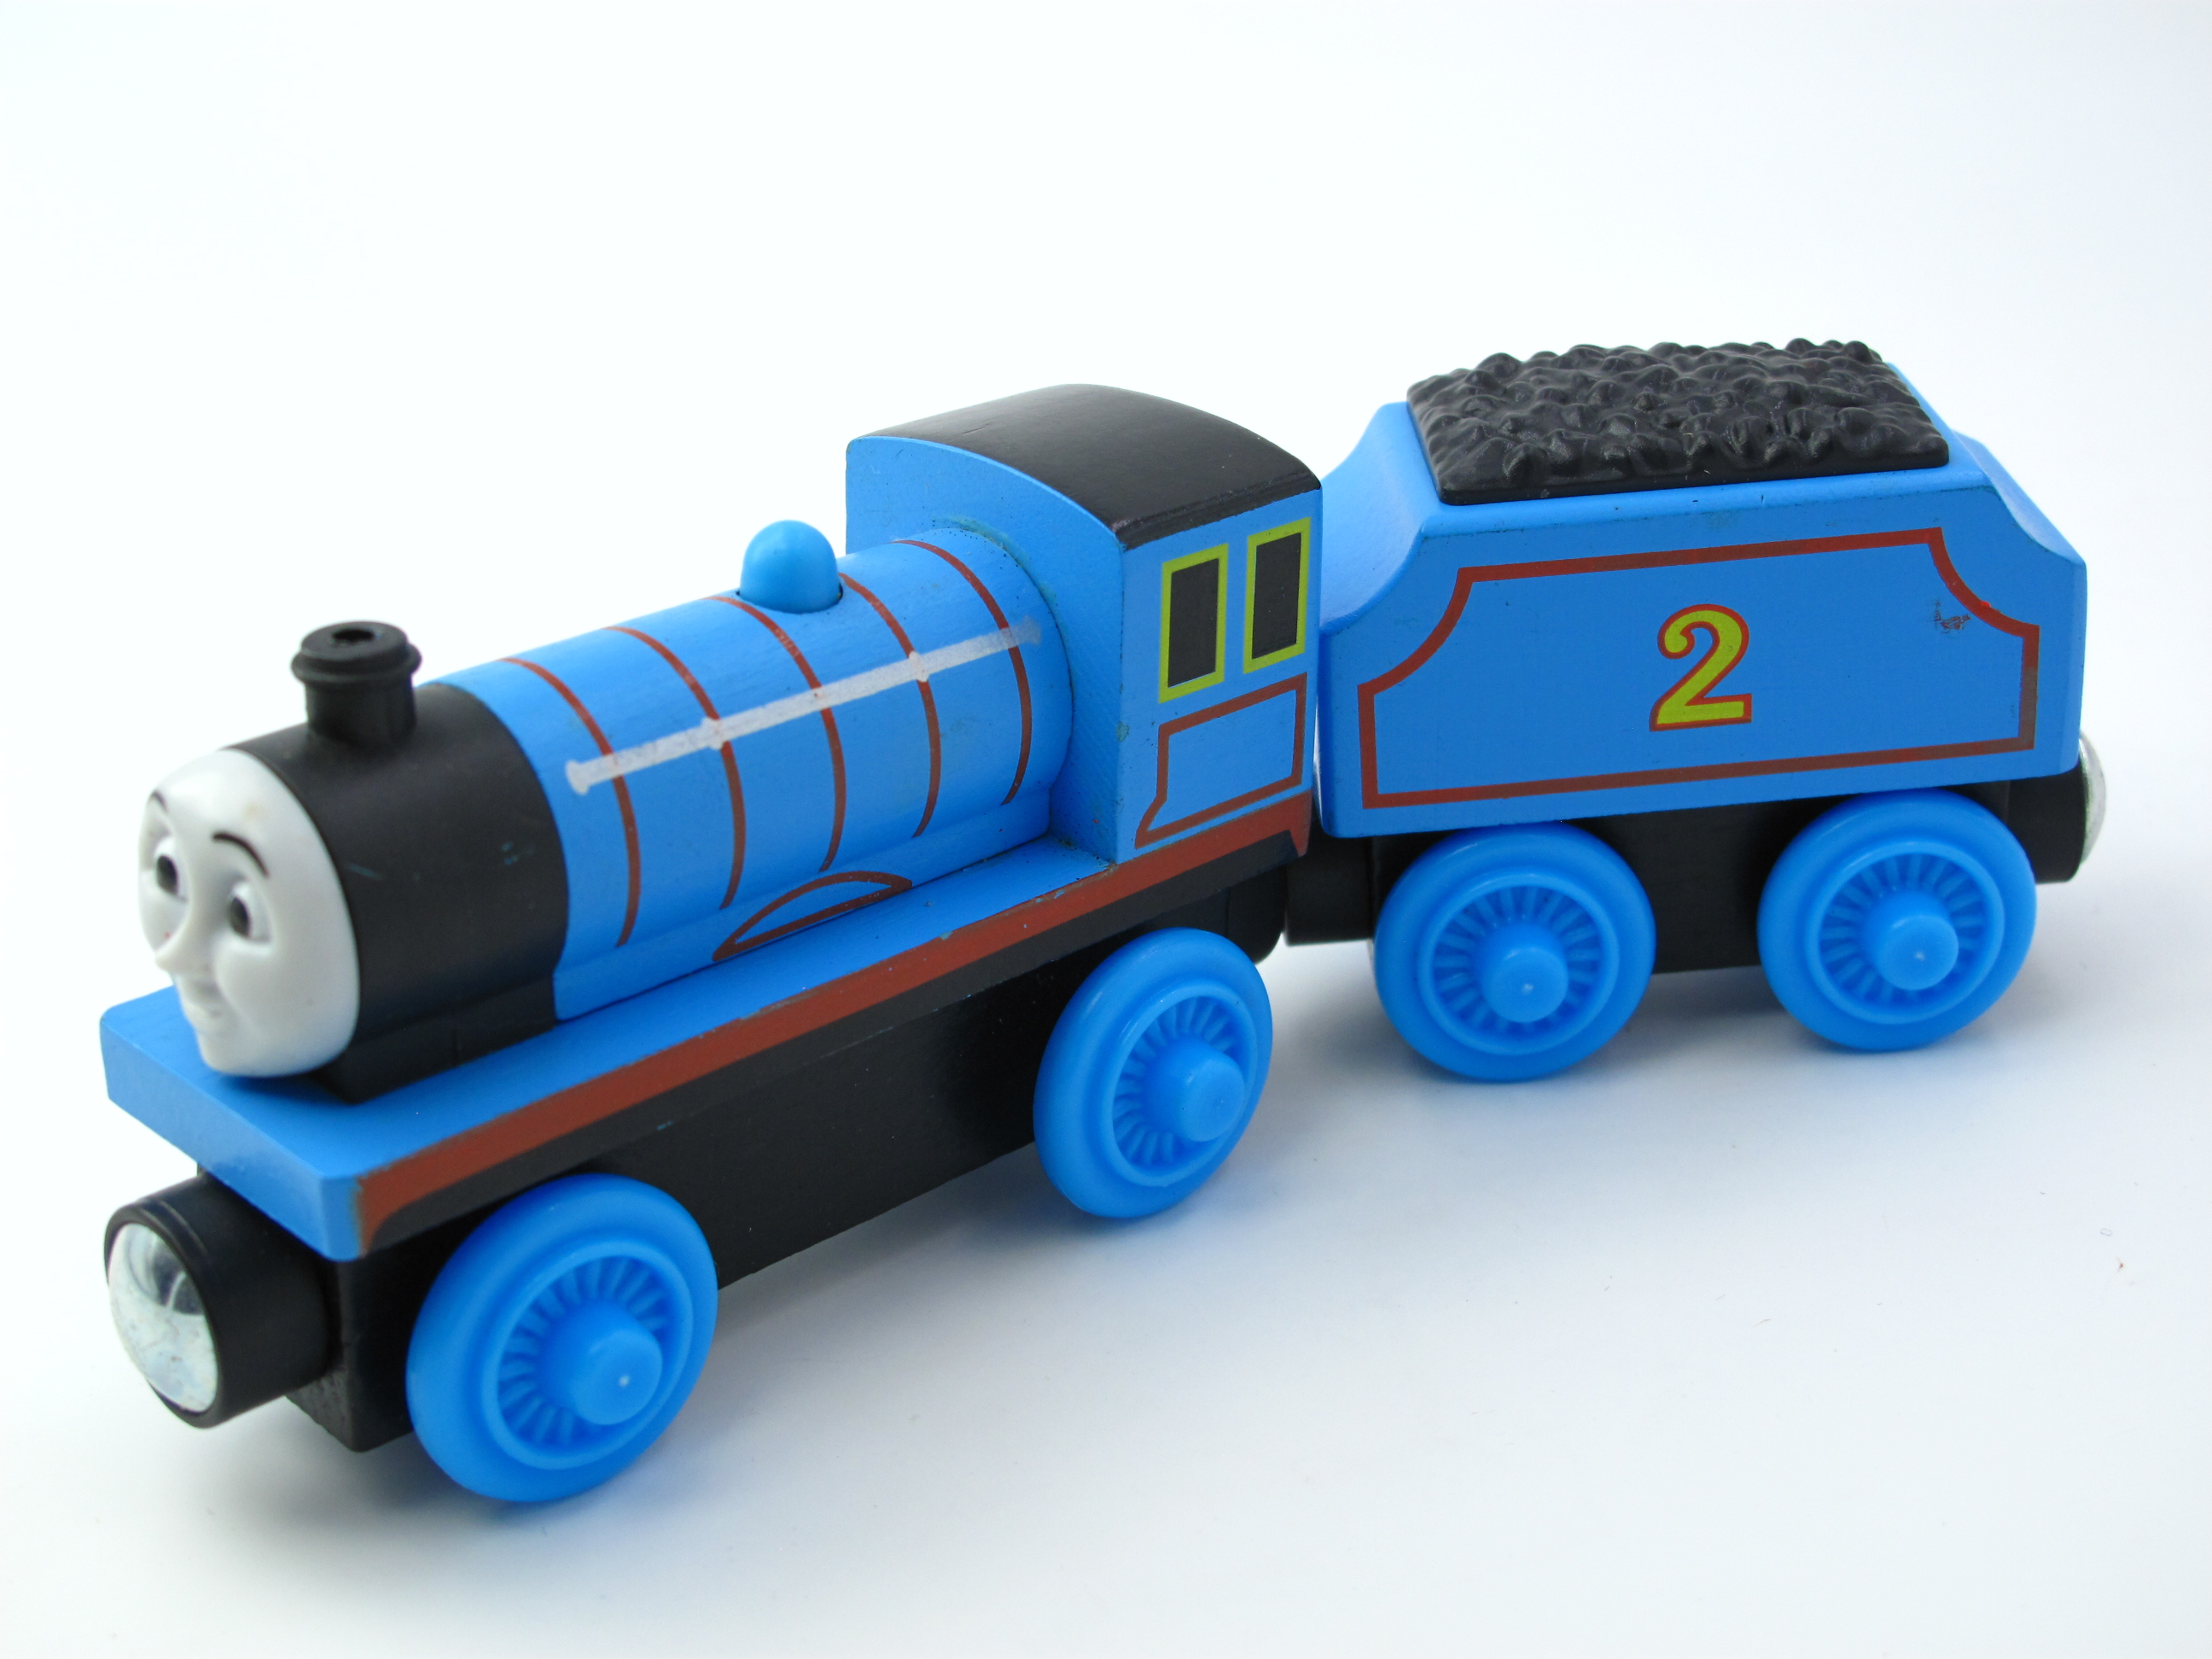 Wooden Thomas Train T048W EDWARD Thomas And Friends Trackmaster Magnetic Tomas Truck Car Locomotive Engine Railway Toys for Boys